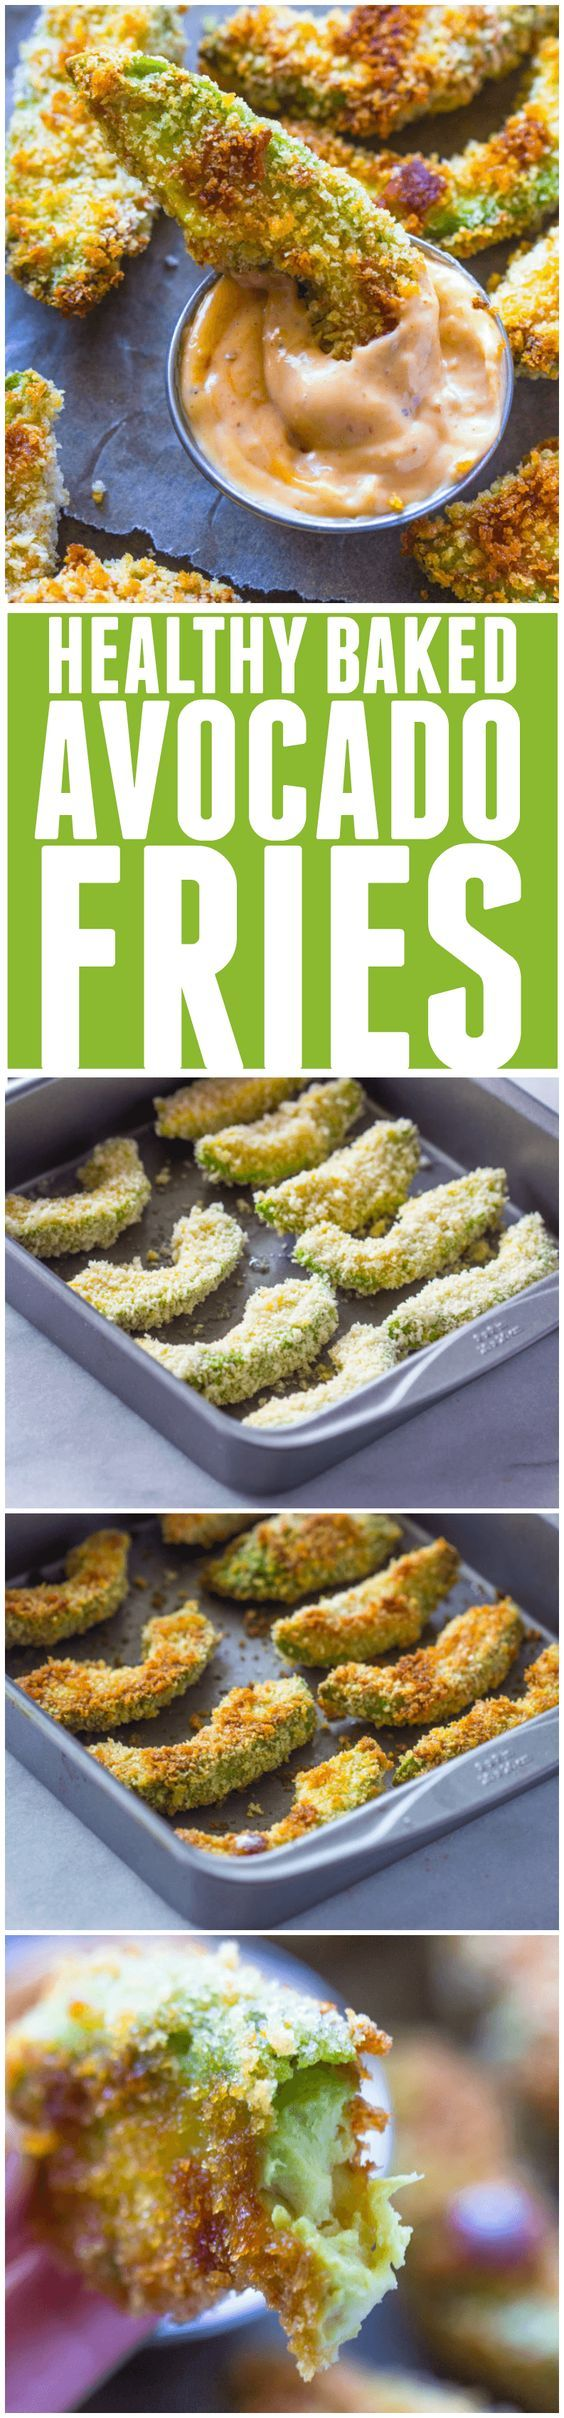 Crispy Baked Avocado Fries and Chipotle Dipping Sauce